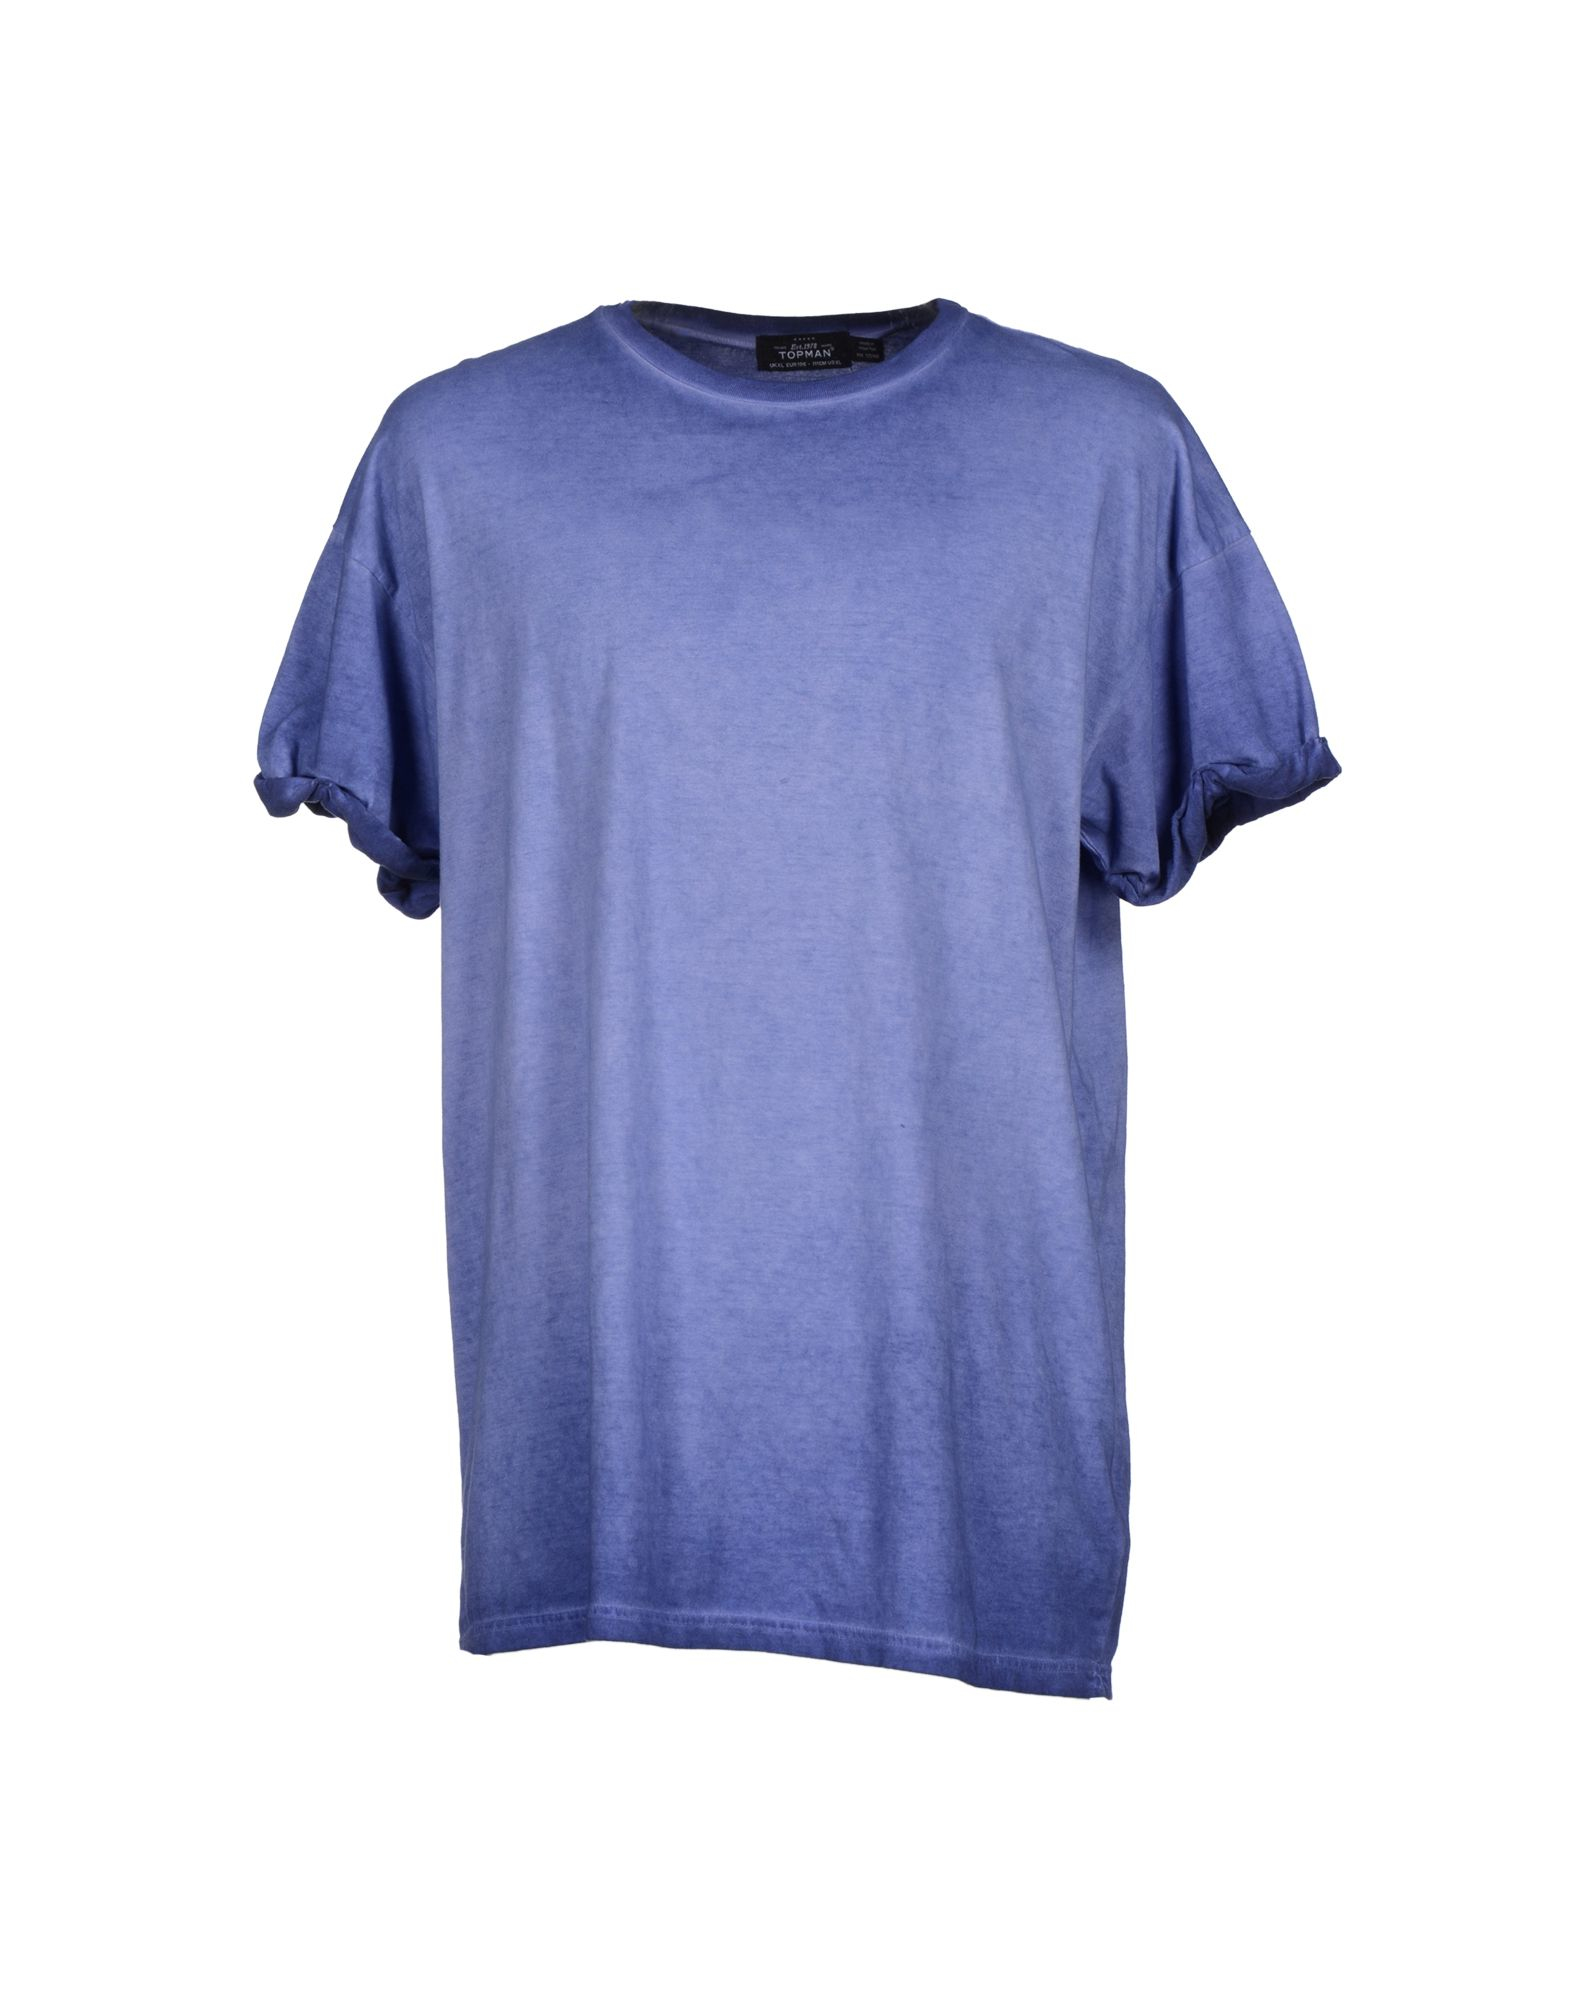 Topman t shirt in blue for men pastel blue lyst for Pastel colored men s t shirts